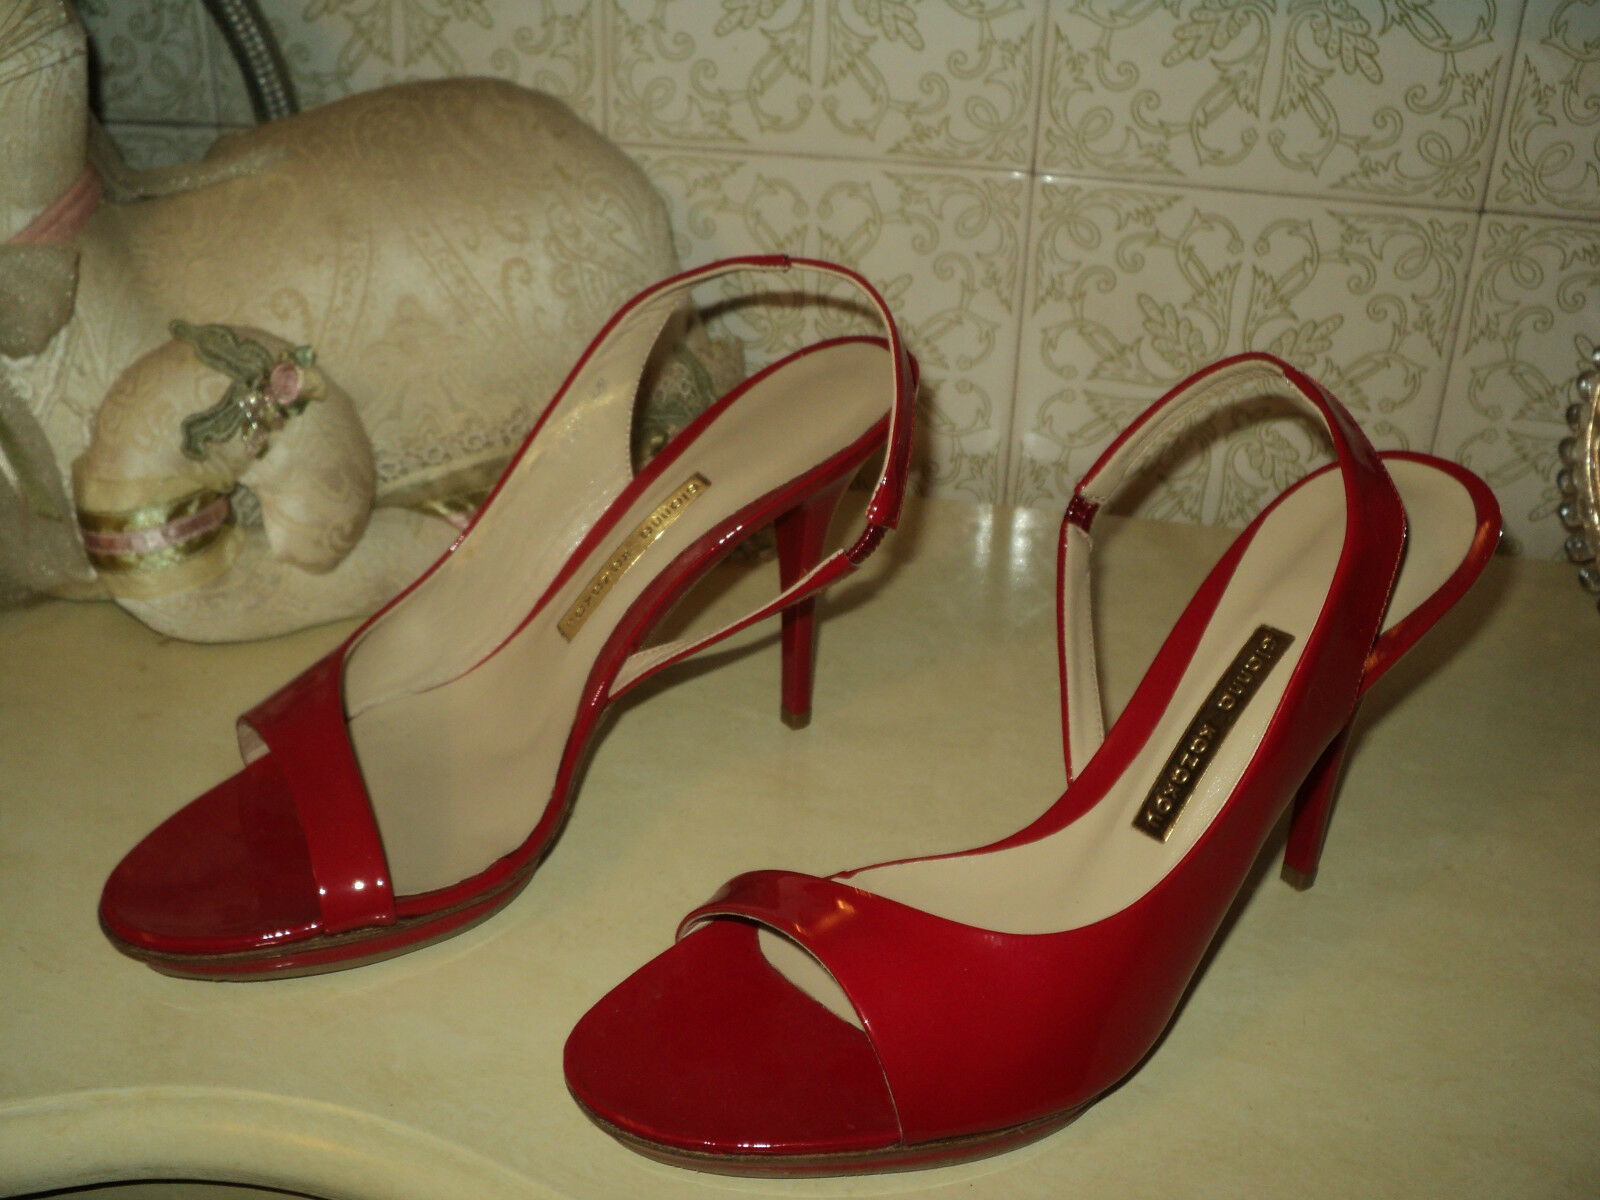 RED PATENT GENUINE LEATHER SLINGBACK SANDALS STILETTO HEELS*EU 38 *US 7,5 *